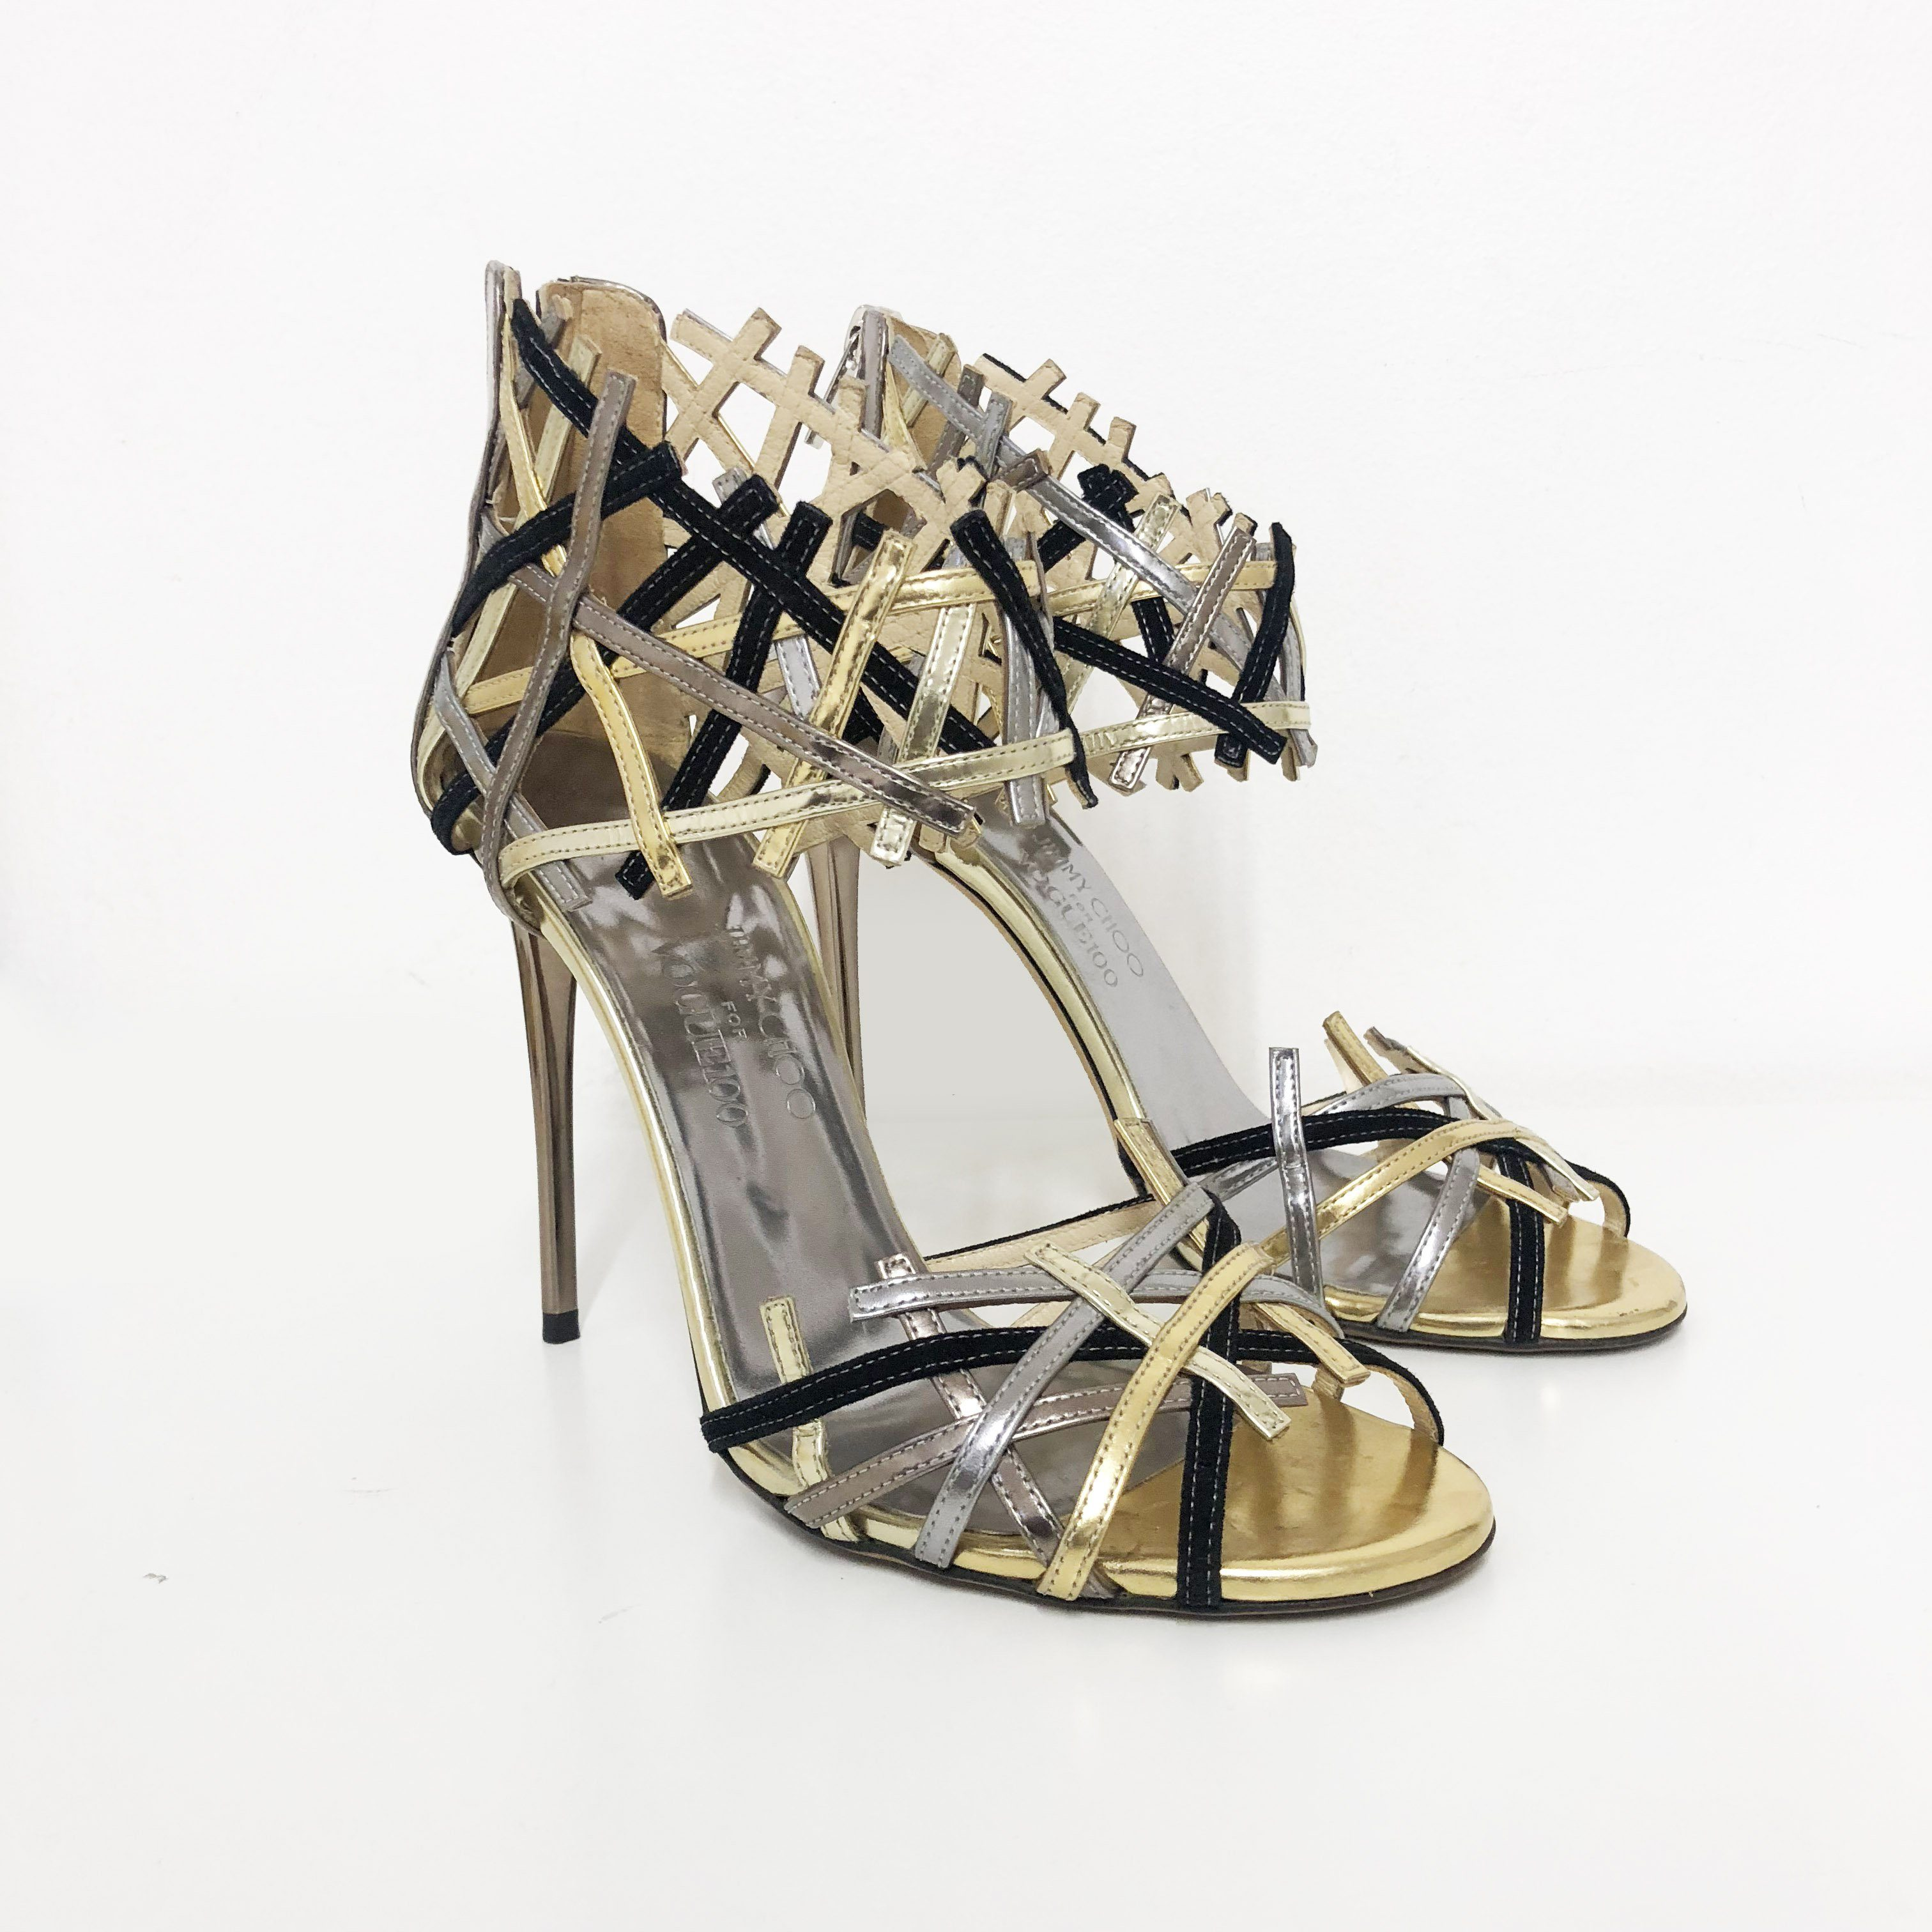 Jimmy Choo Limited Edition Vogue 100 Criss Cross Heels